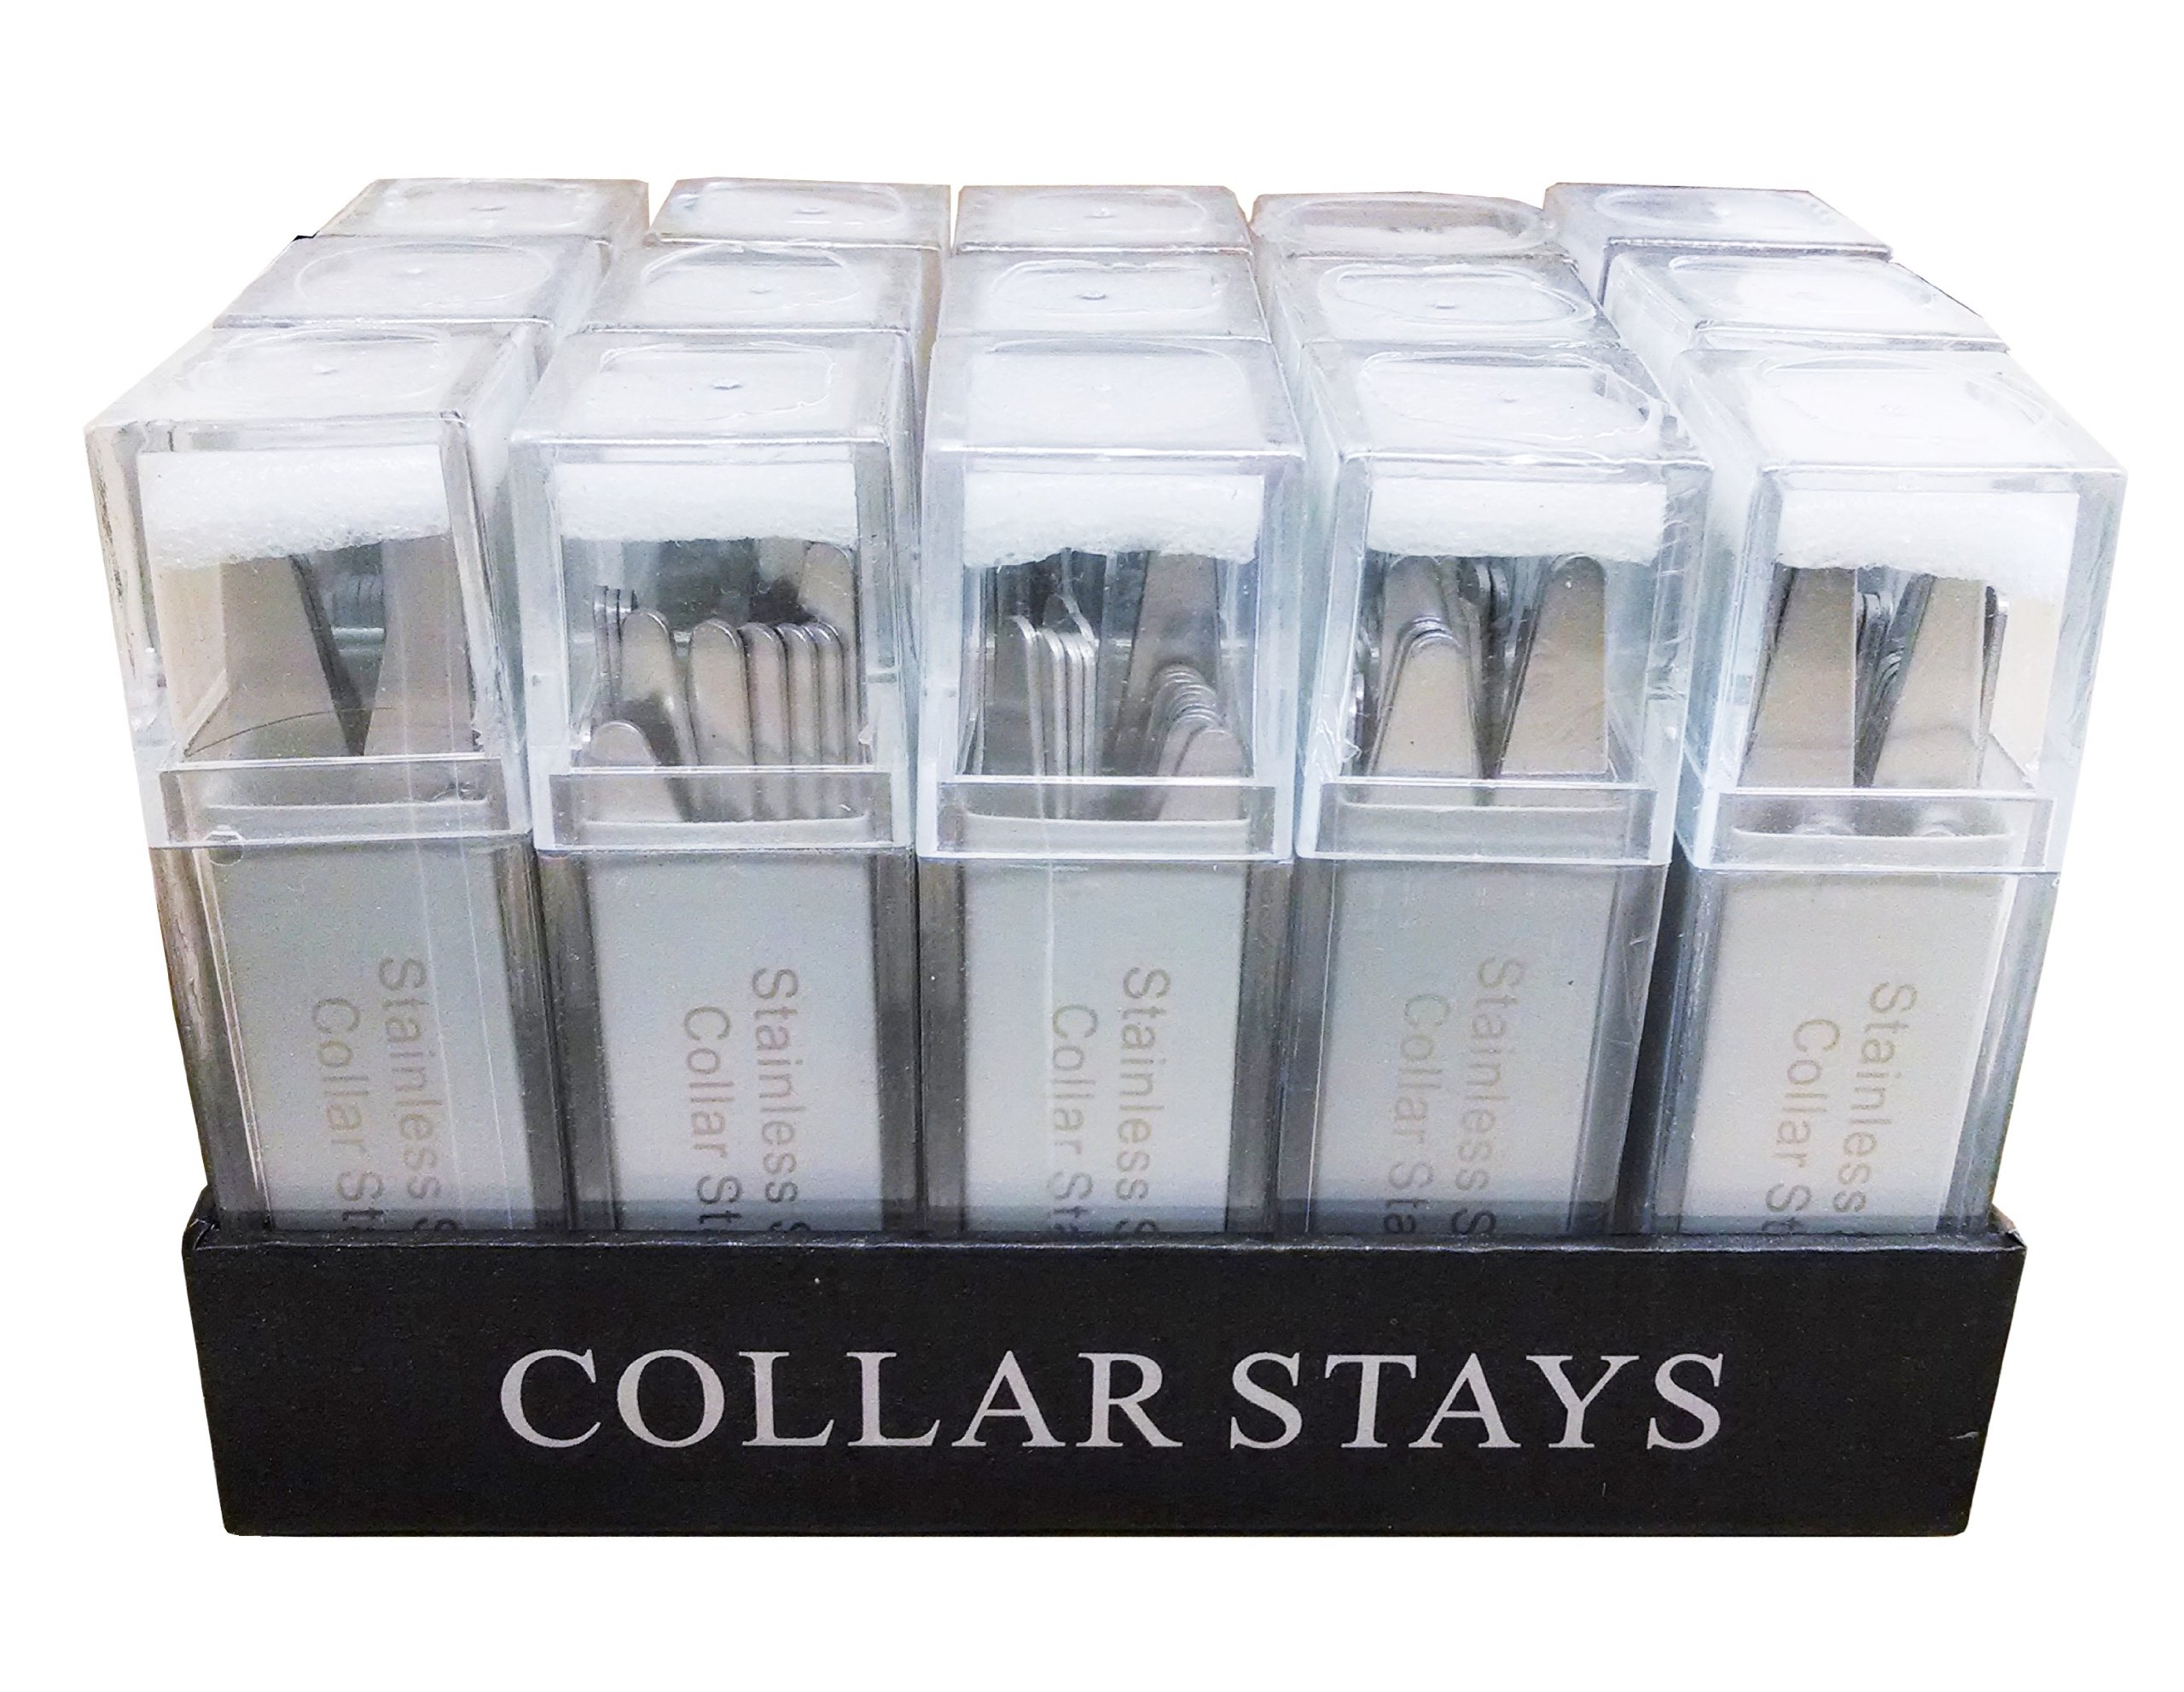 Wholesale Metal Collar Stays - 15 Sets of 28 Collar Stays (4 Sizes)